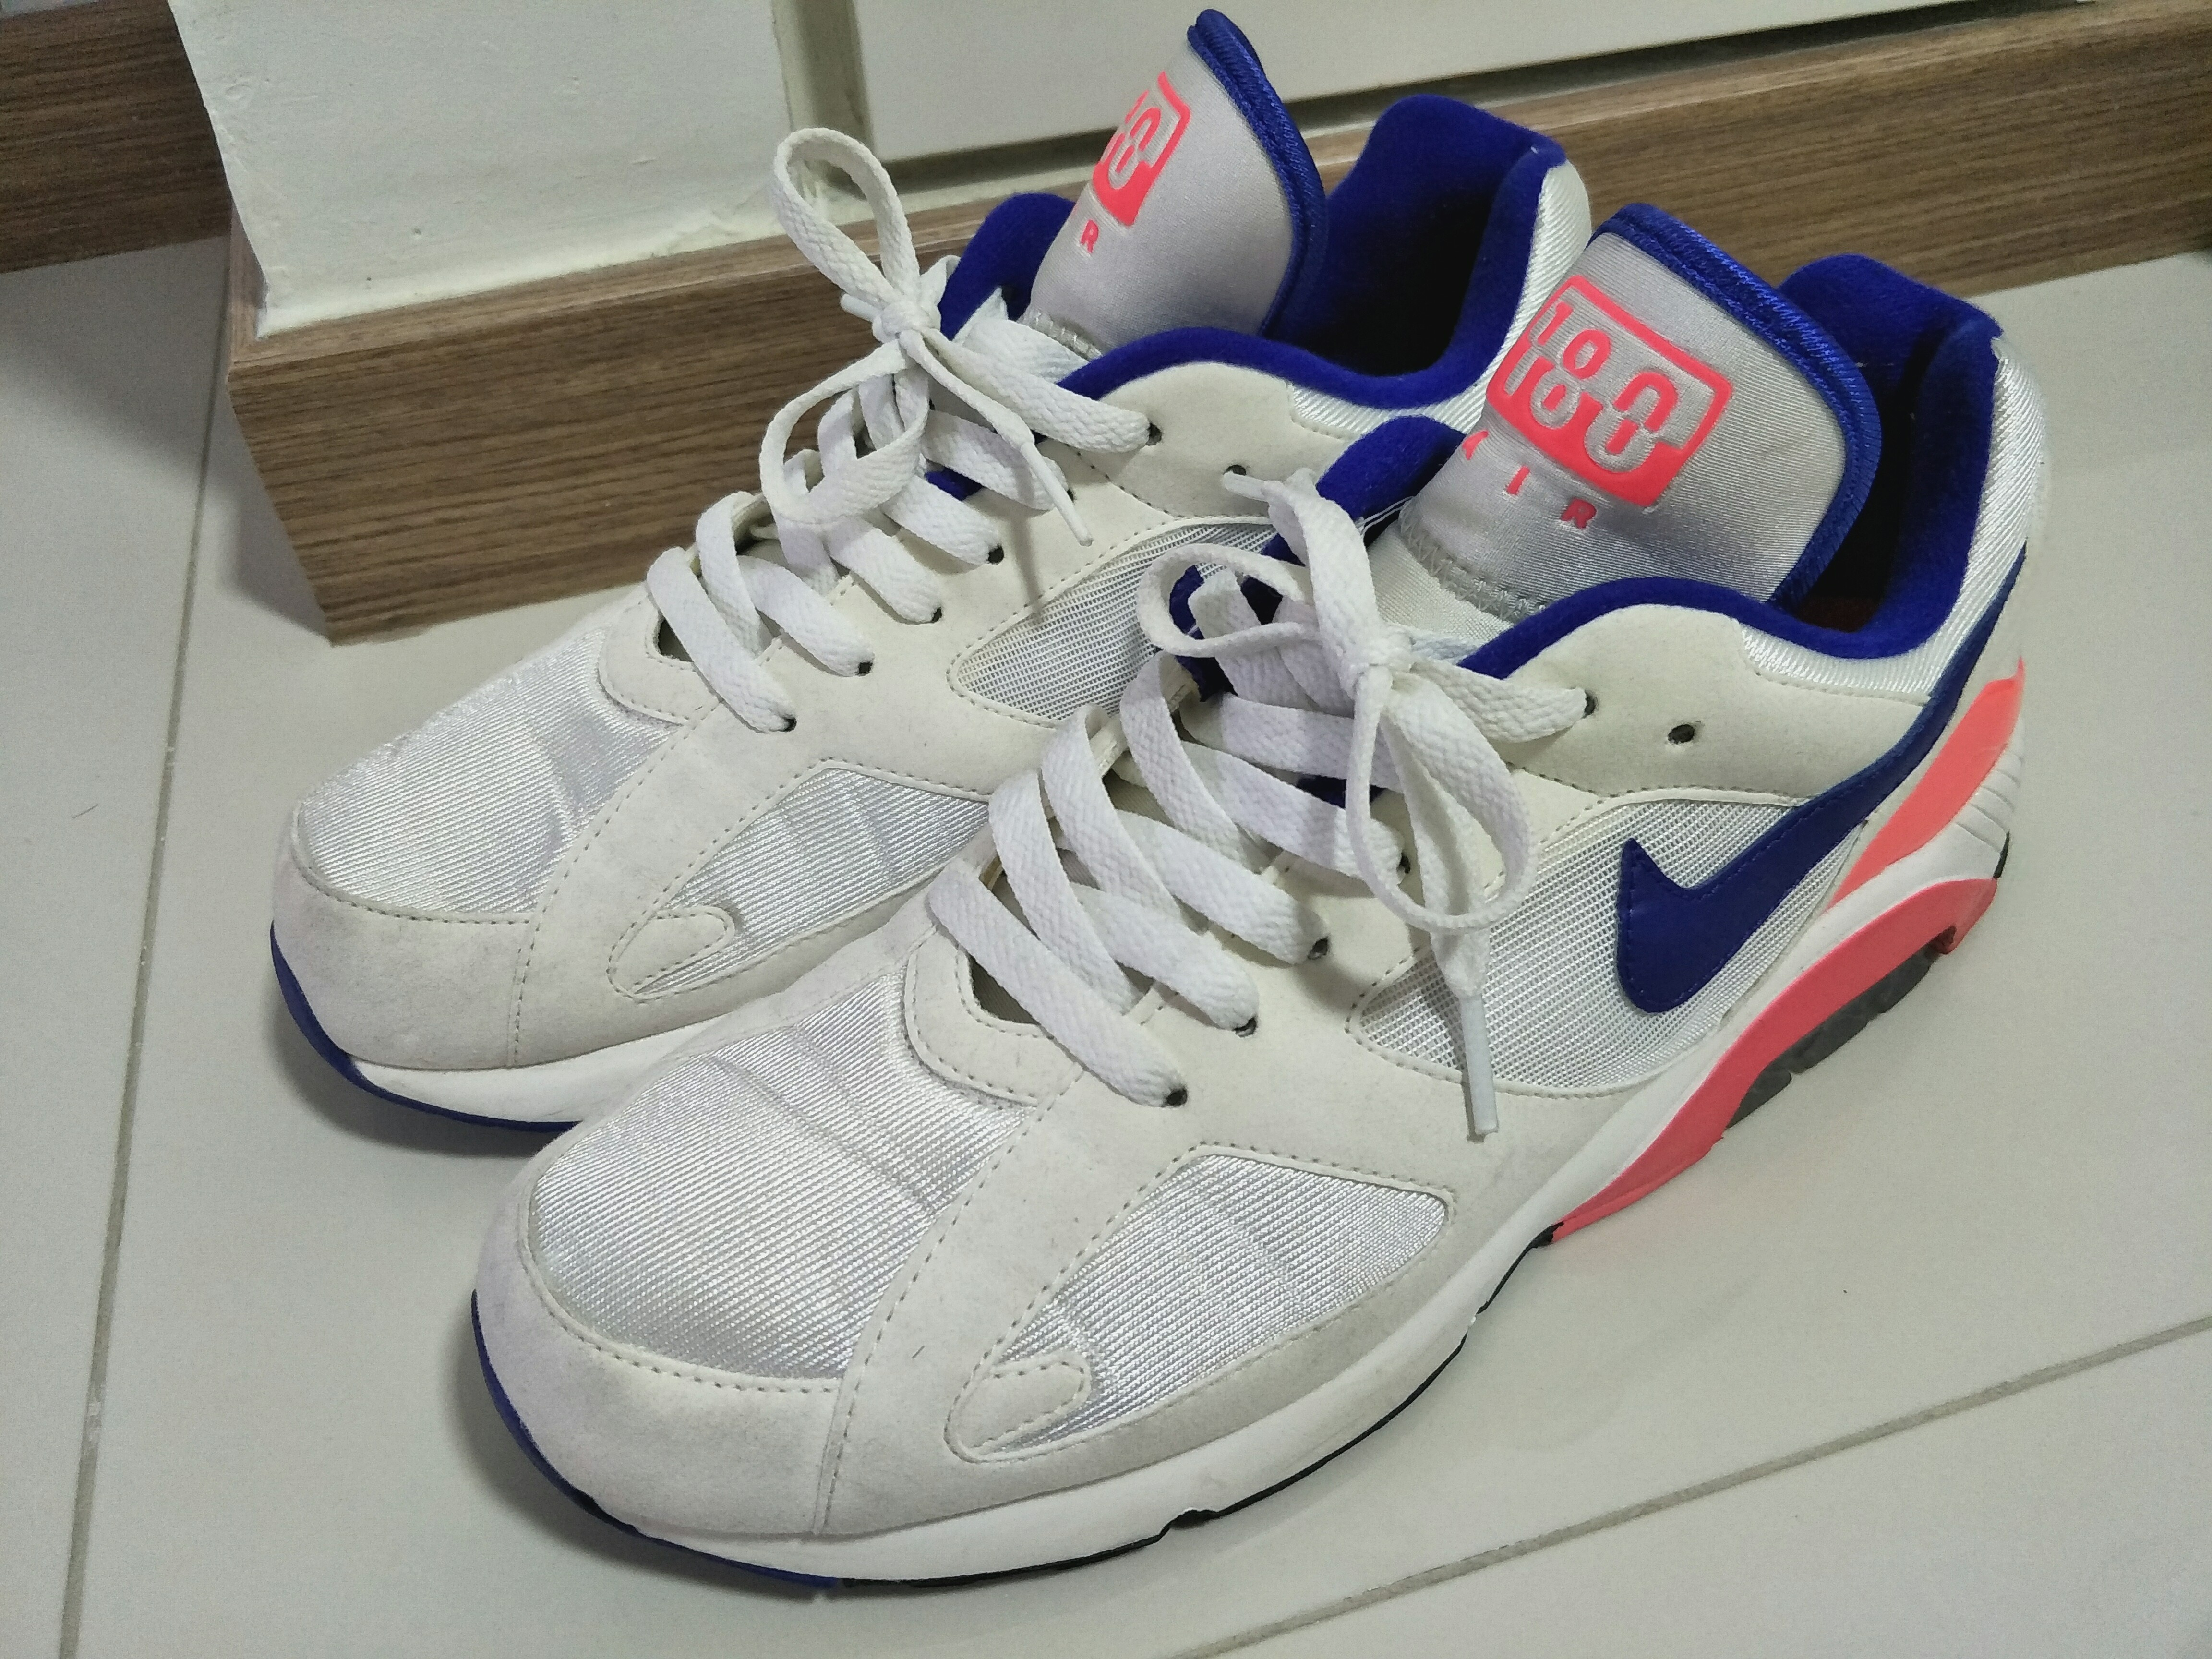 new style 2975e d83ac Home · Men s Fashion · Footwear · Sneakers. photo photo photo photo photo